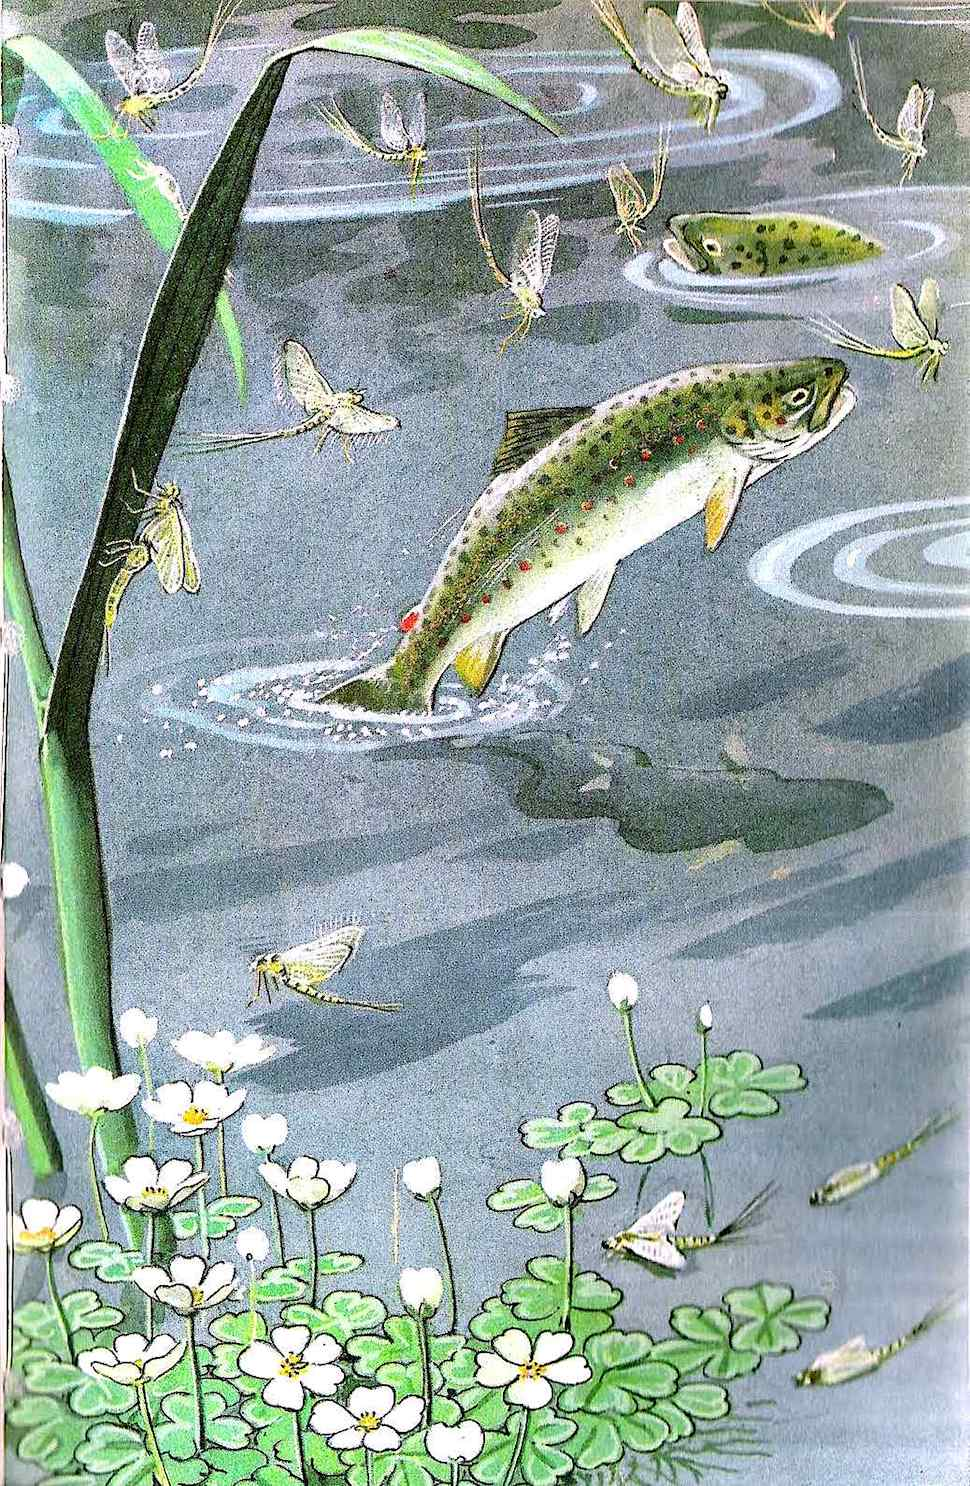 a Charles Tunnicliffe illustration of swampy marsh life